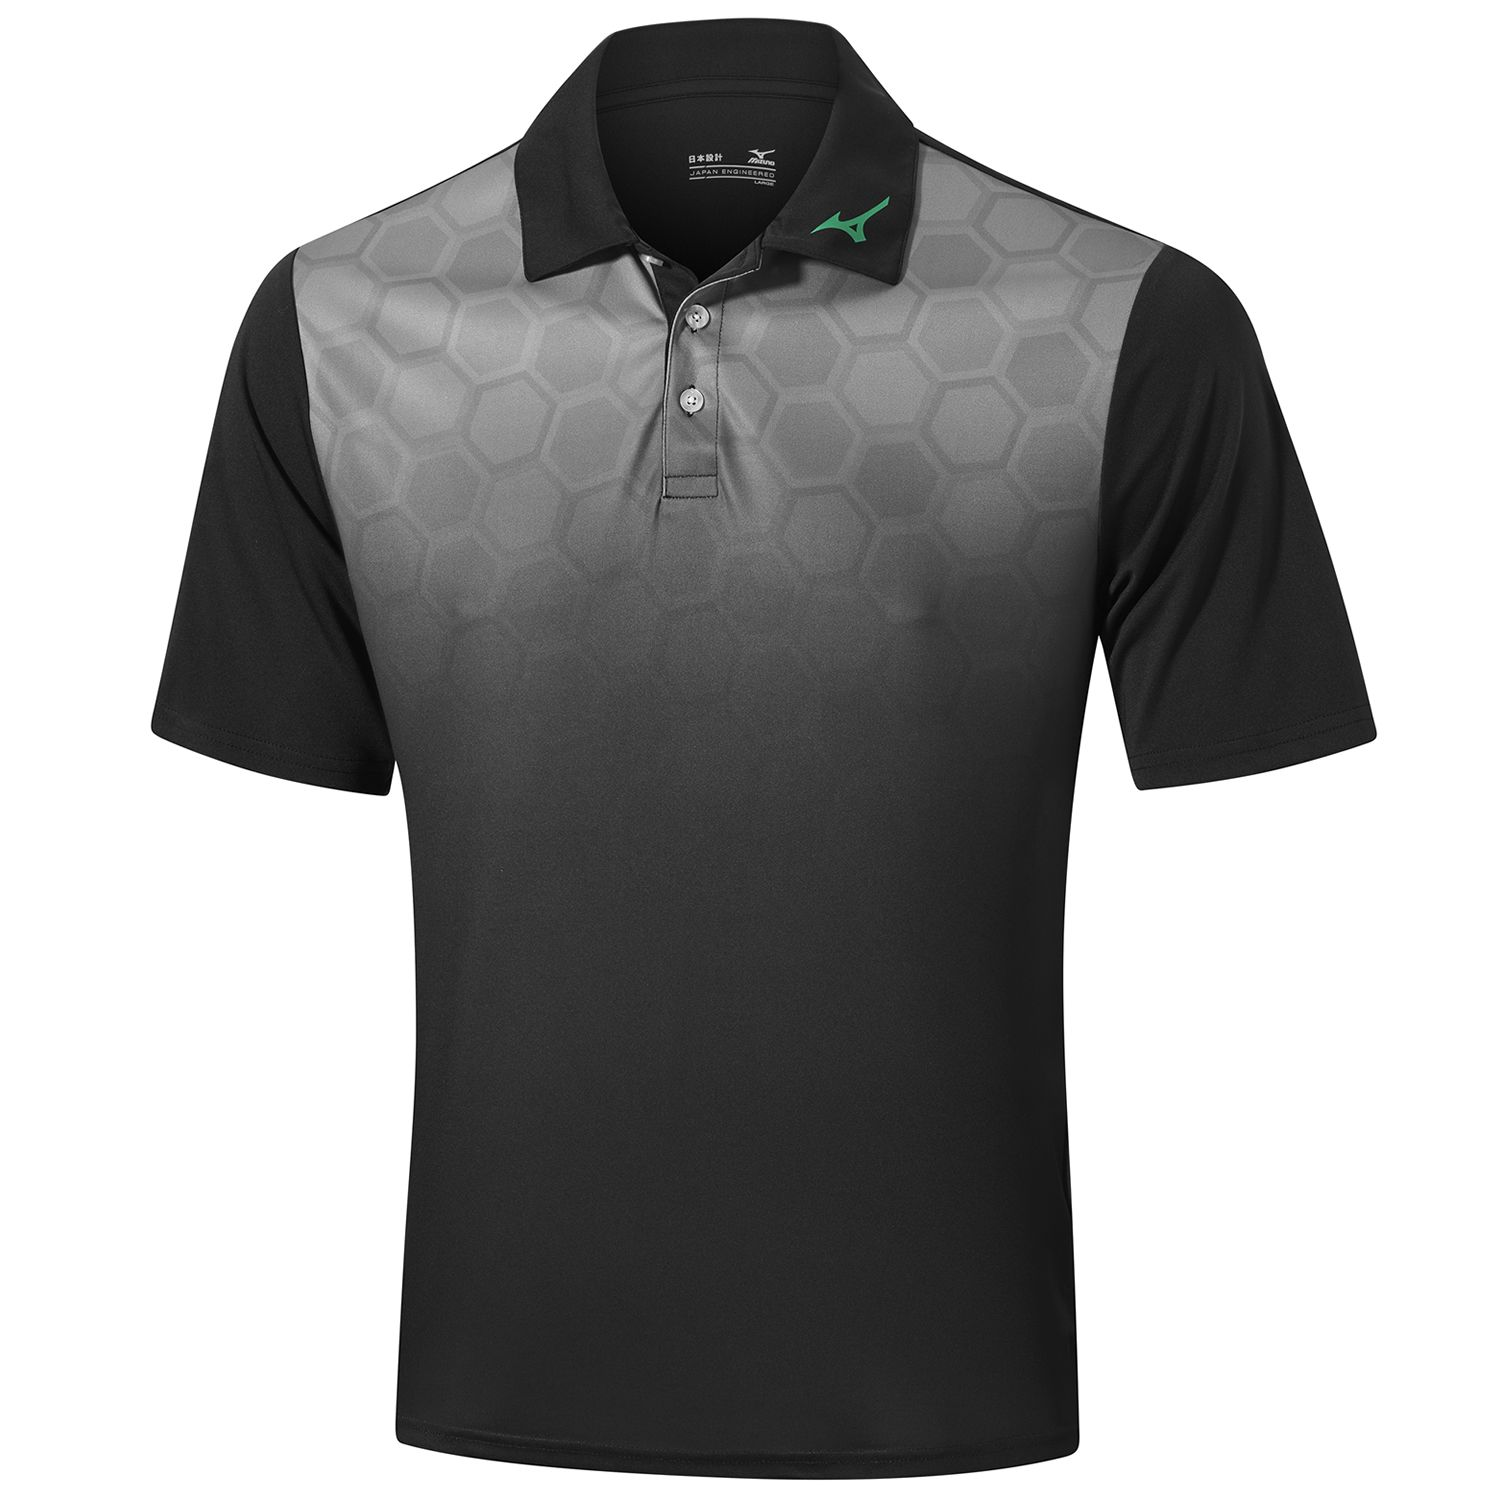 Mizuno Gradient Hexagon Polo Shirt